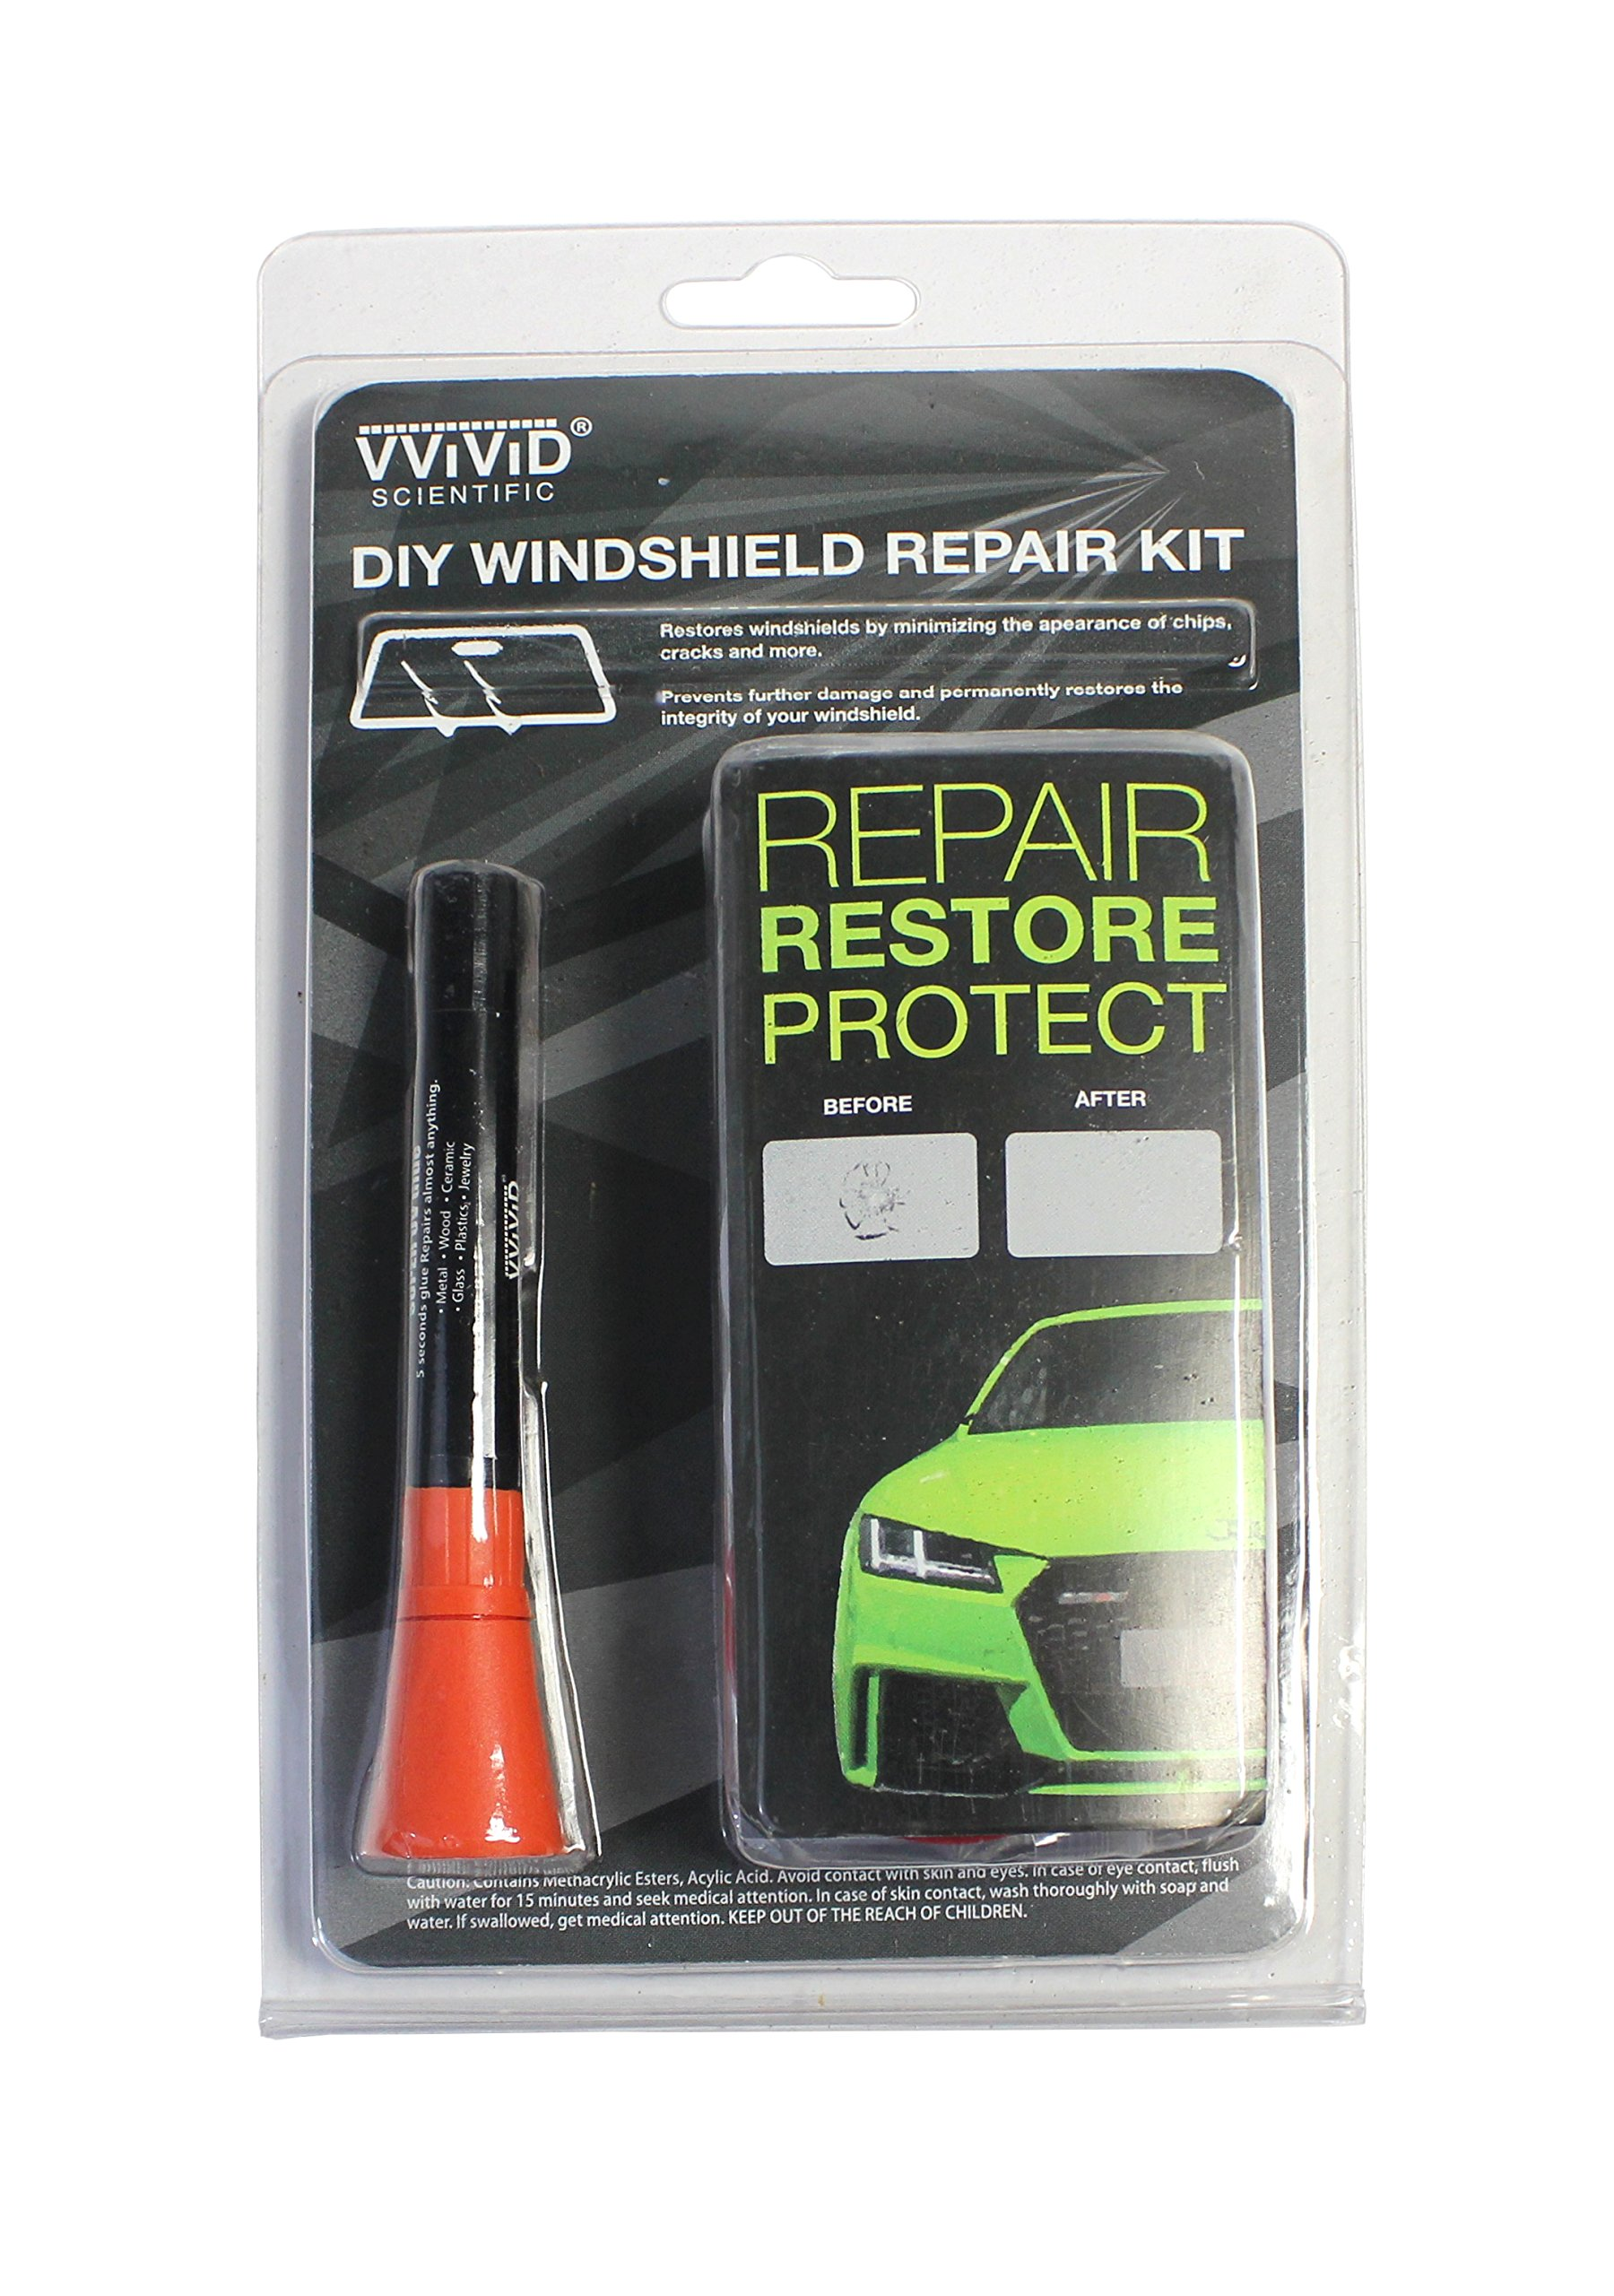 VViViD Do-It-Yourself Windshield Repair Kit